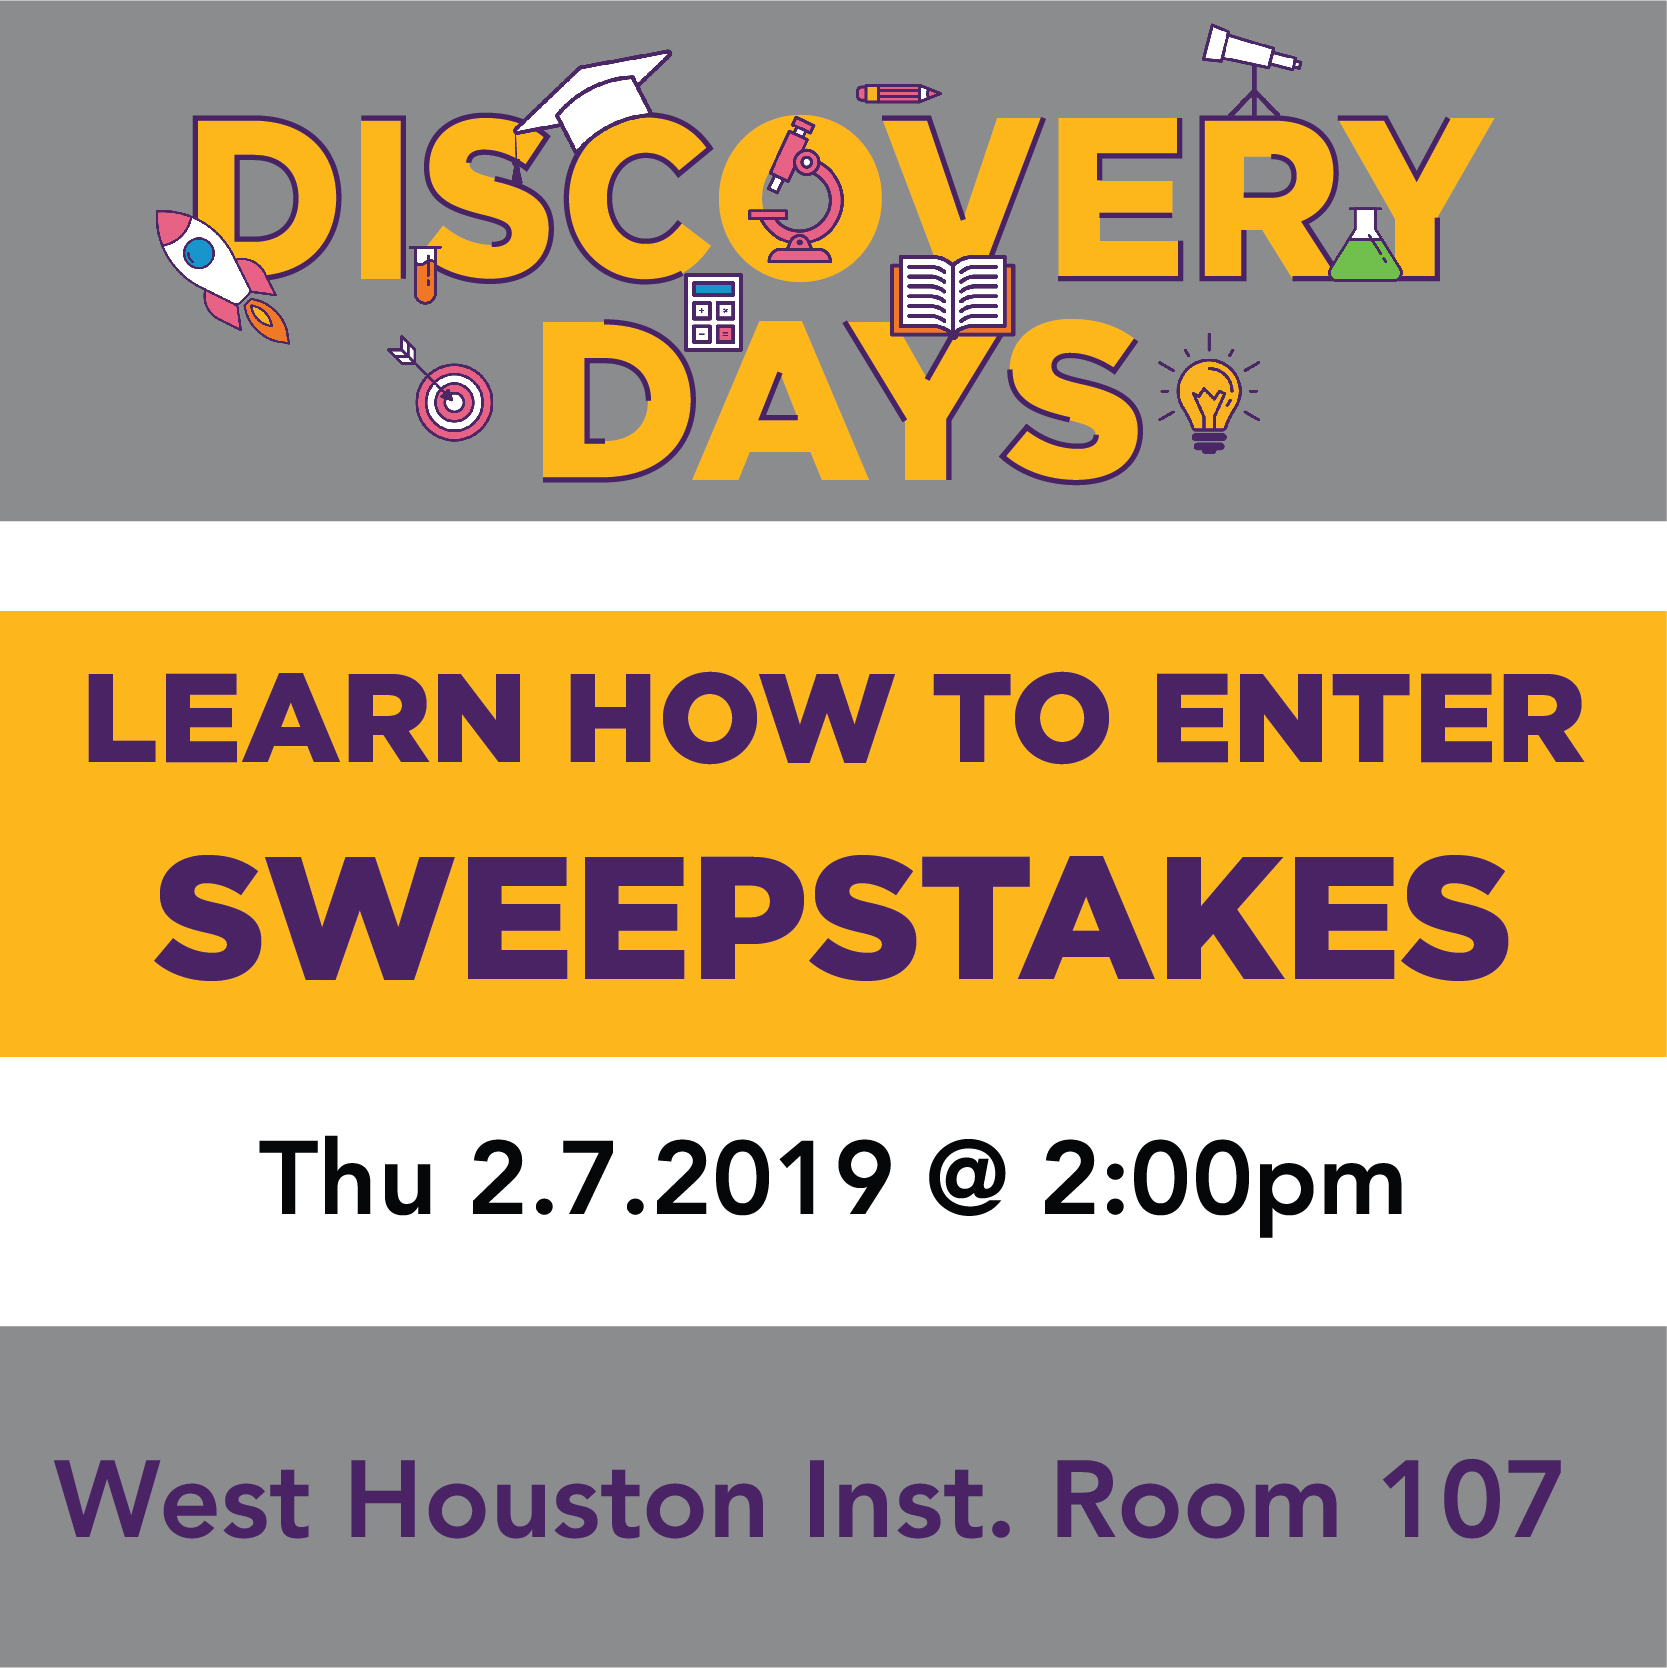 Discovery Days - How to Enter Sweepstakes